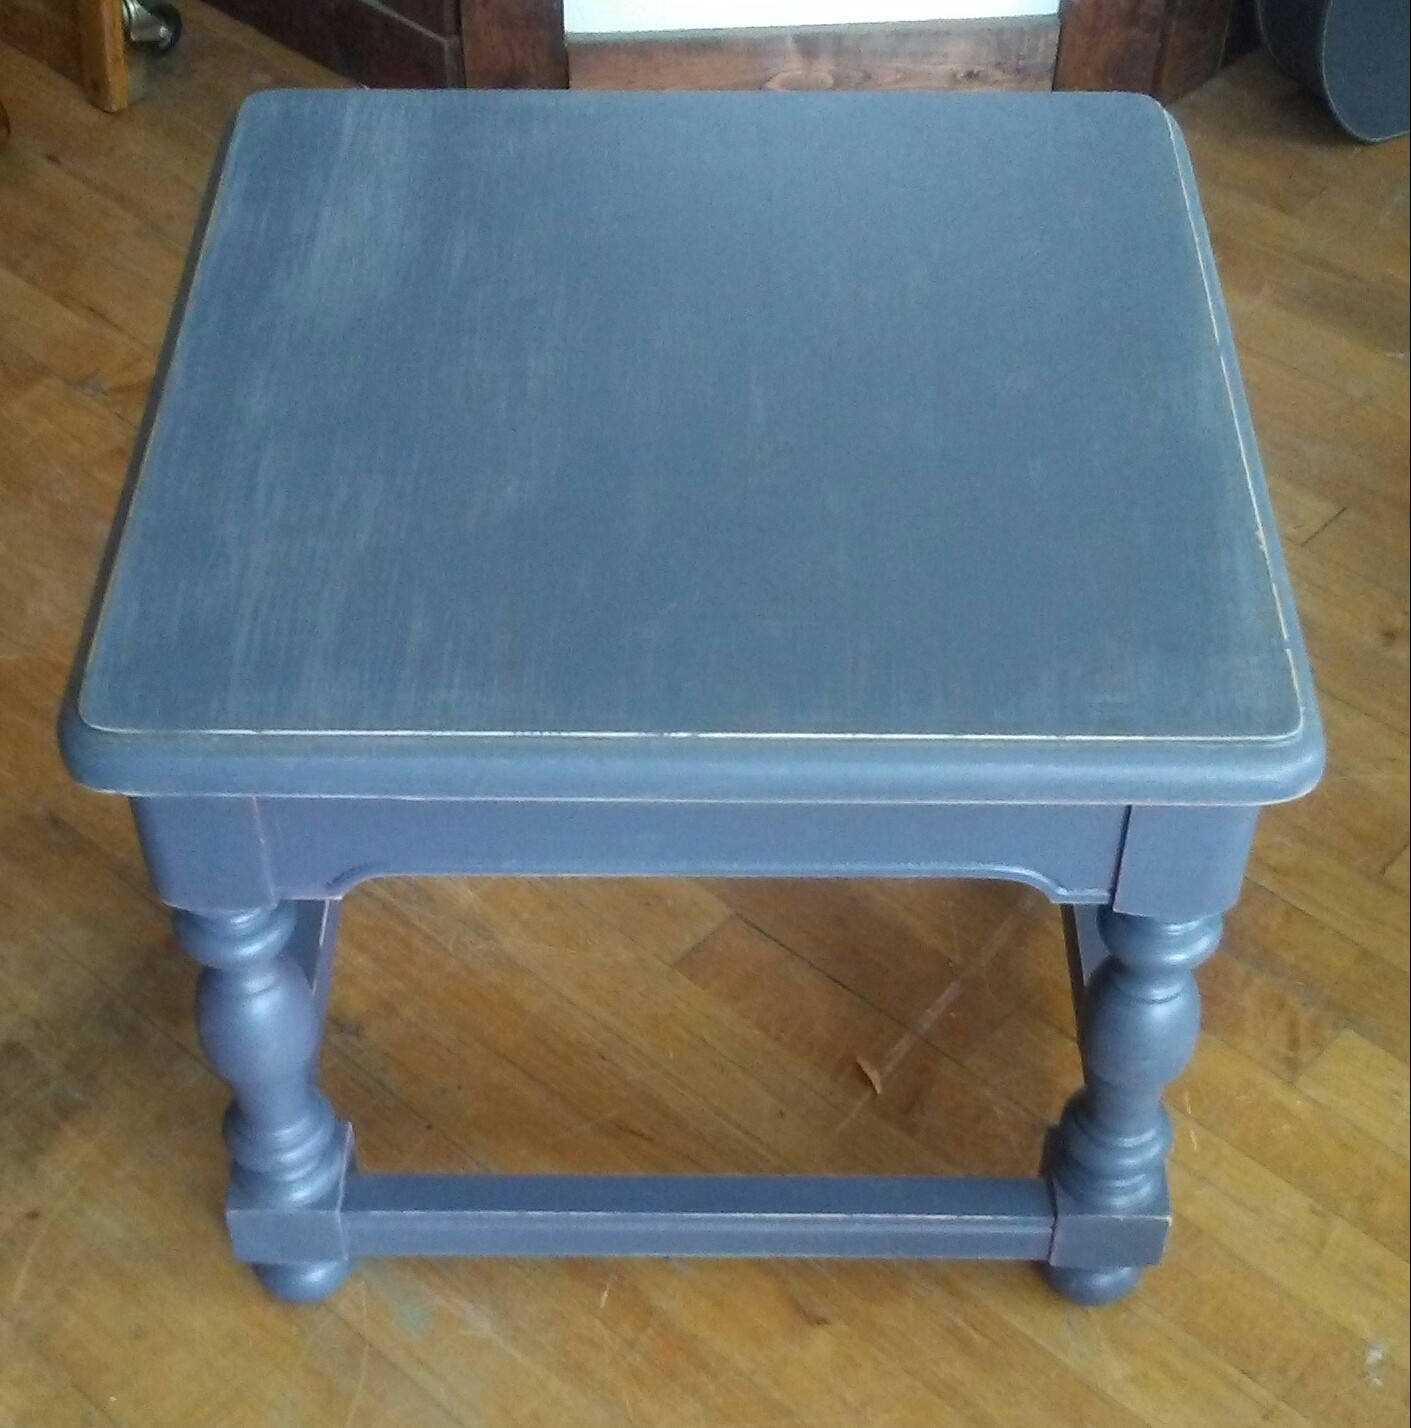 dark gray painted end table shabby chic accent for ori charcoal refurbished vintage and slightly distressed this looks great country farmhouse primitive traditional grey linens